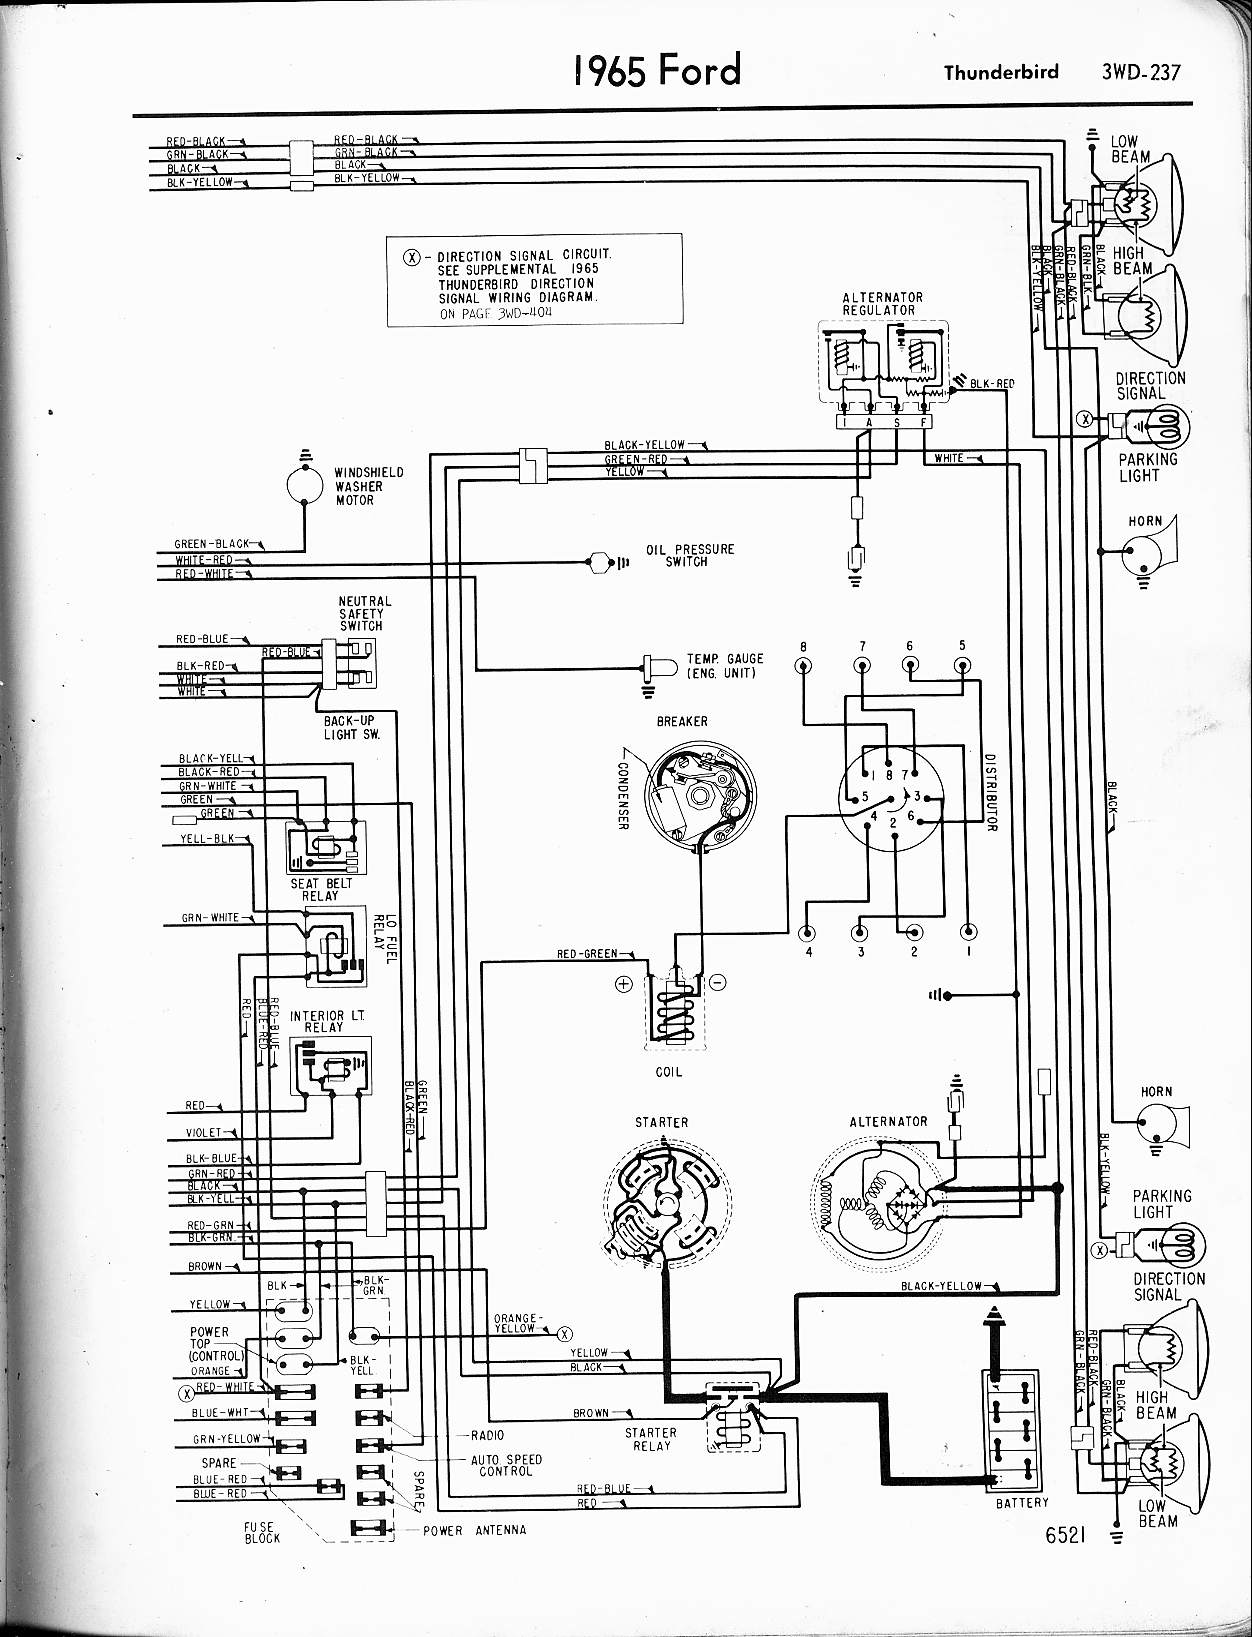 1964 Ford Thunderbird Fuse Box Layout Wiring Diagram Libraries 2000 Van 1963 Third Level1964 Diagrams